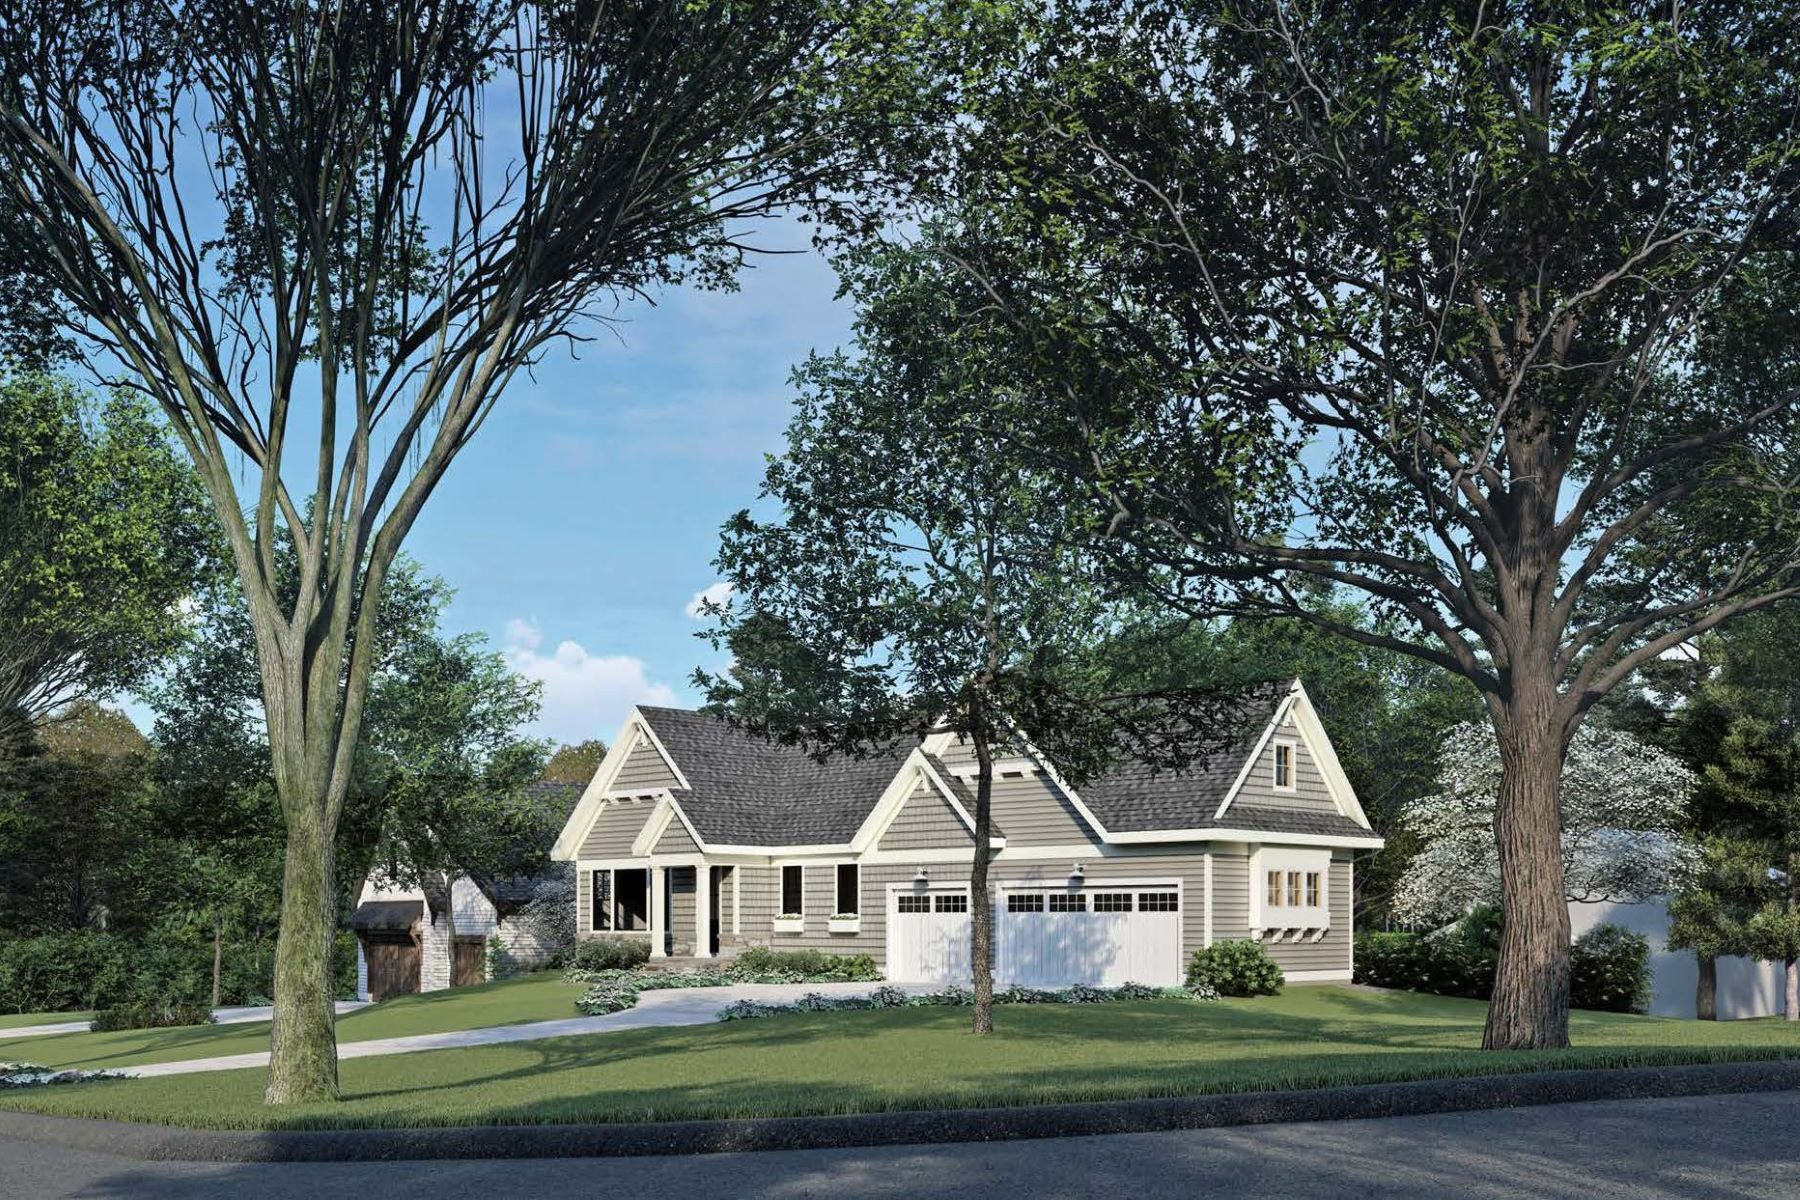 Land for Sale at Opportunity to Build Your Dream Home in the Tranquil Area of Highcroft, Wayzata 290 Peavey Road Wayzata, Minnesota 55391 United States